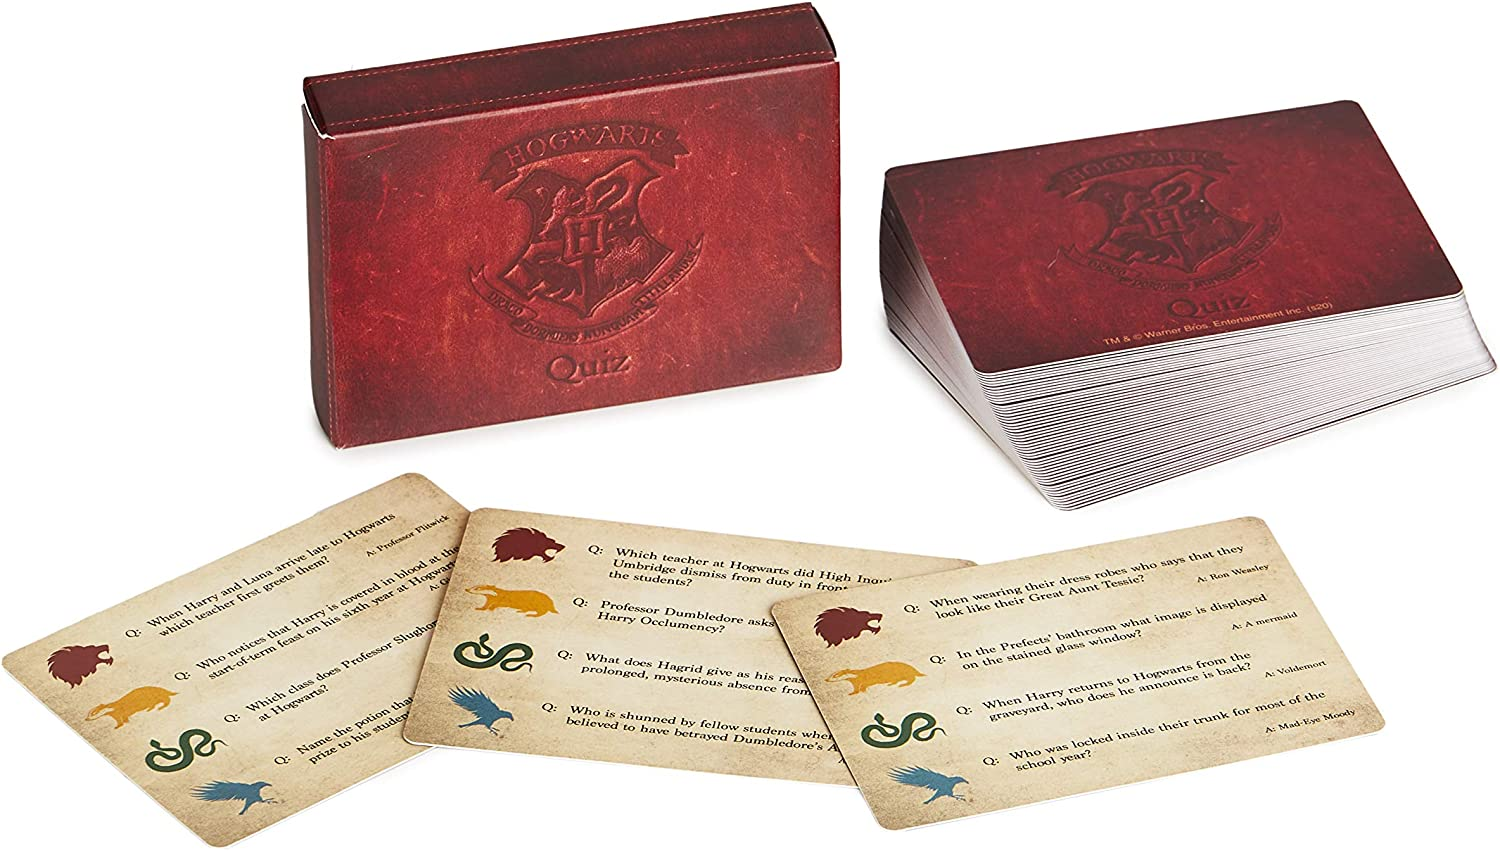 Paladone Hogwarts Trivia, 200 Harry Potter Questions, Officially Licensed